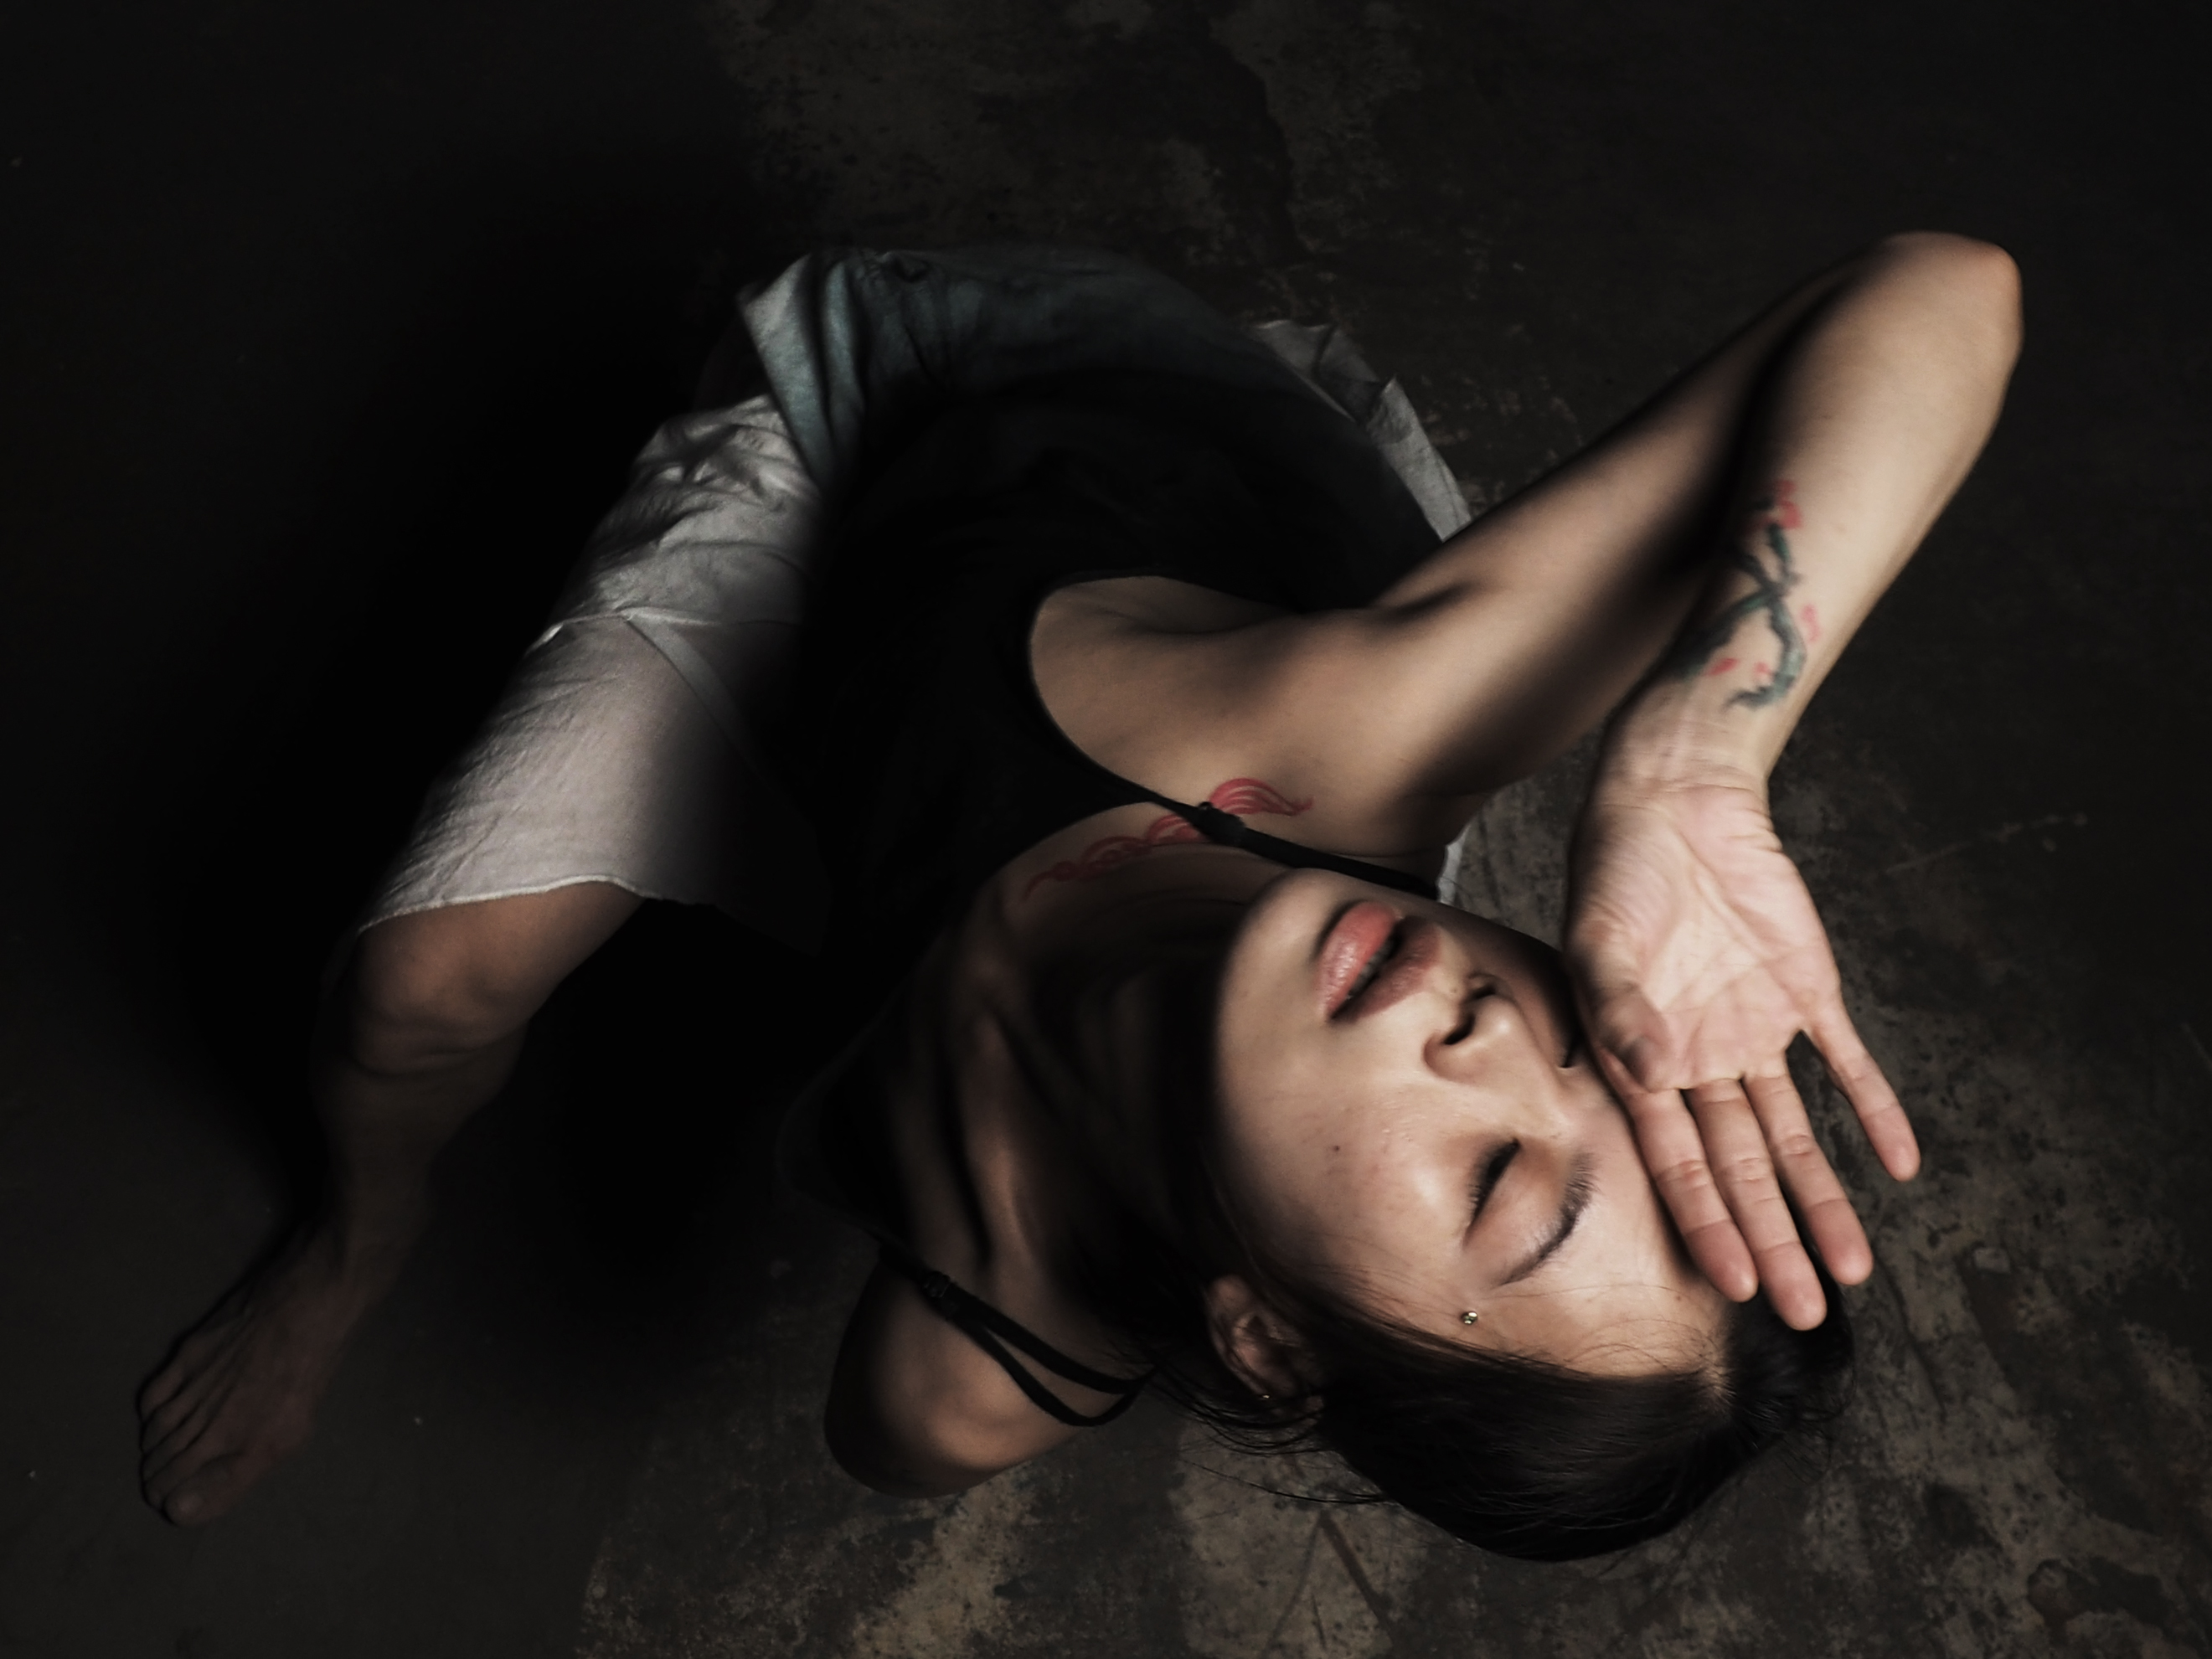 Monologues of Solitary by Suelynee / 何書伶 / Taiwan artist